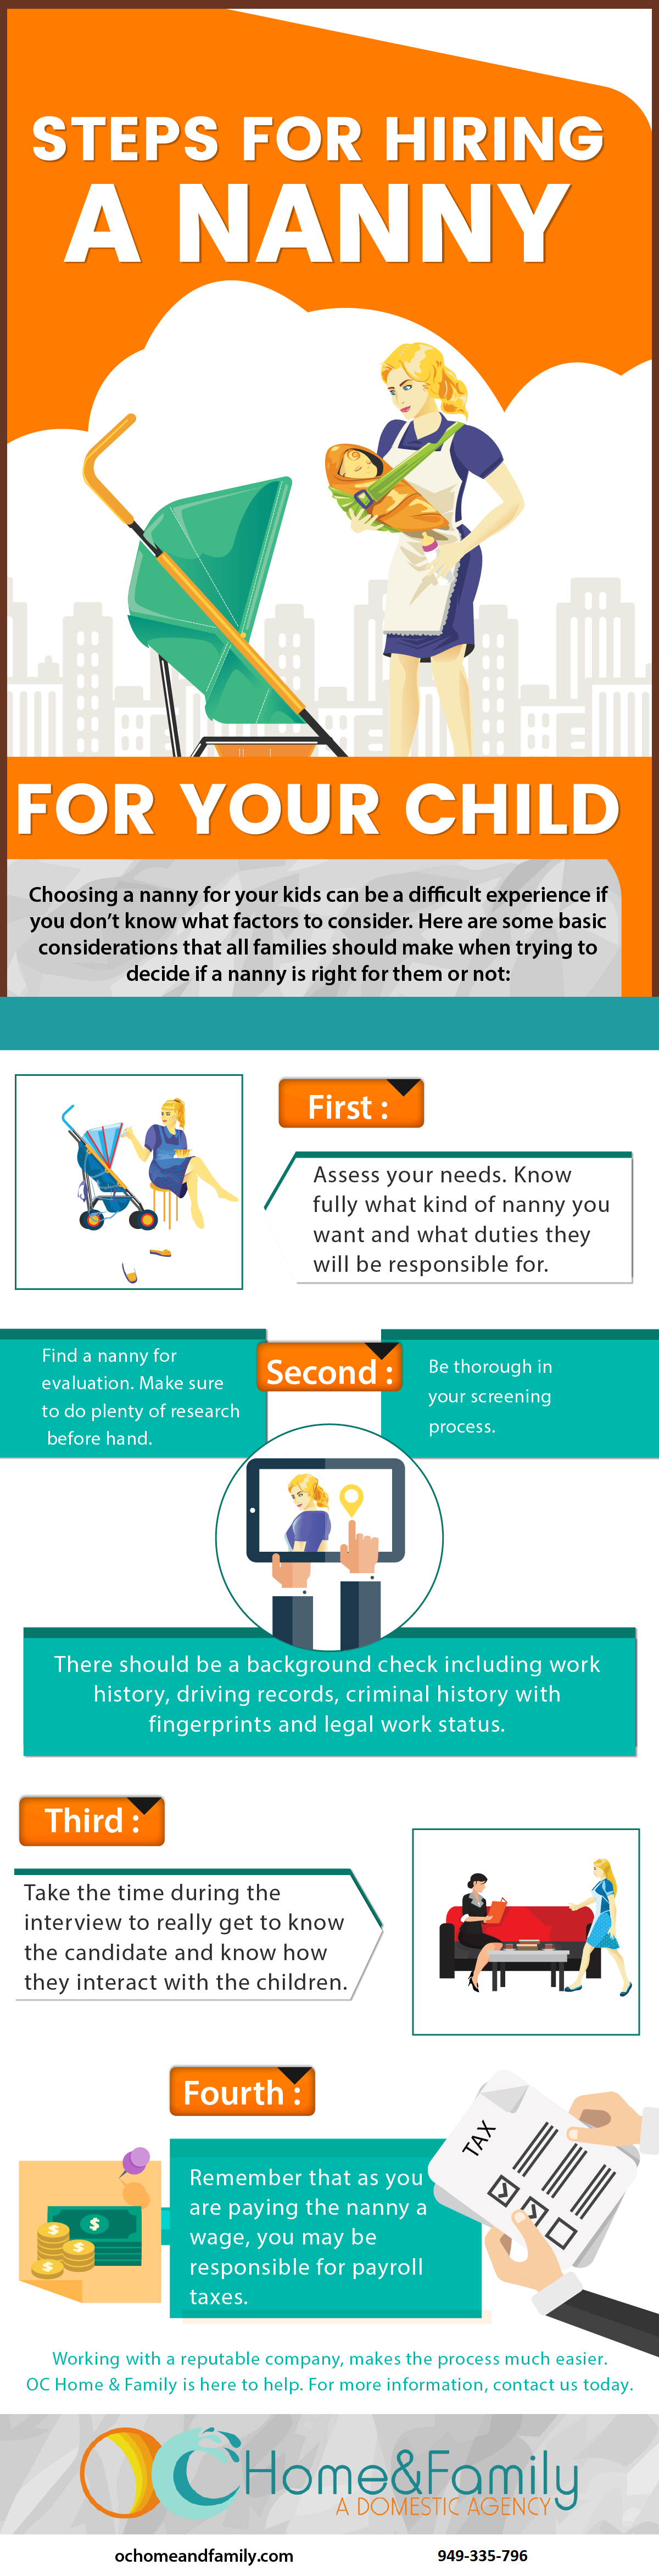 Steps for hiring a nanny infographic